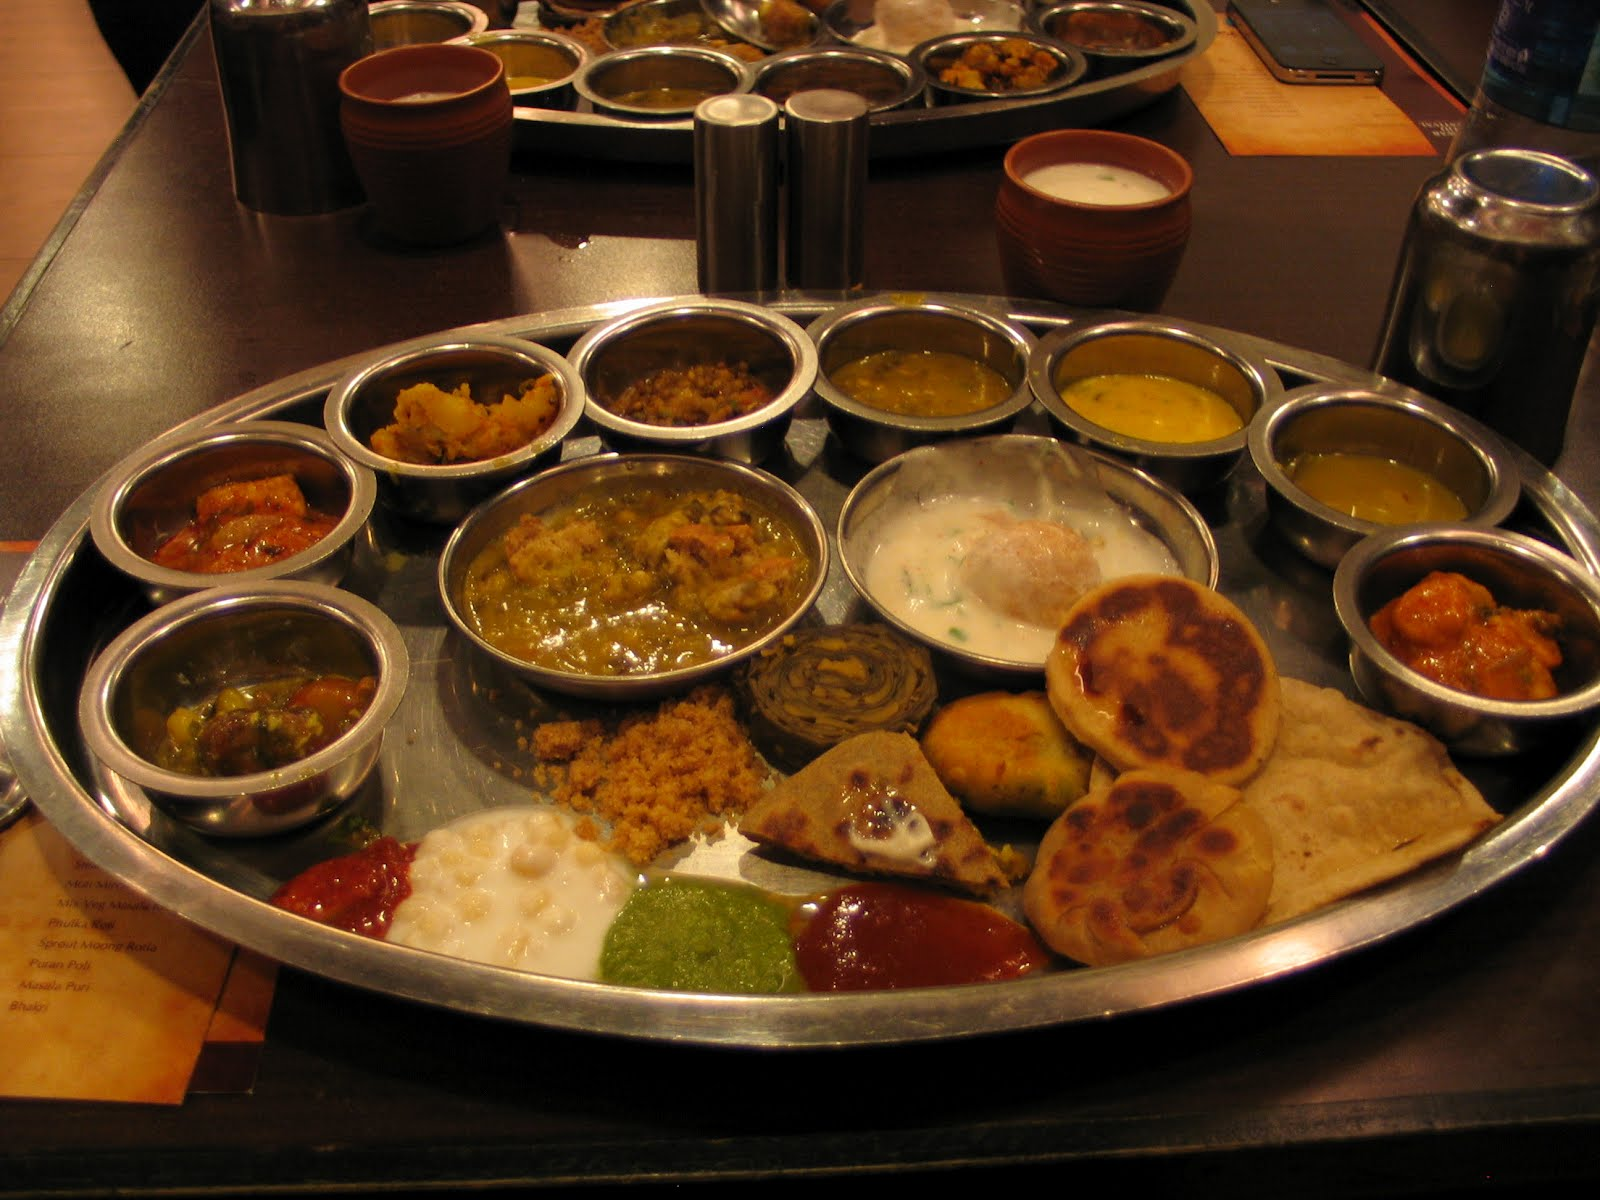 """The famous Rajasthani thali. Courtesy:   https://www.scoopwhoop.com/inothernews/indian-thalis/#.hkkg6lqzt                        Normal   0           false   false   false     EN-IN   X-NONE   X-NONE                                                                                                                                                                                                                                                                                                                                                                                                    Normal   0           false   false   false     EN-IN   X-NONE   X-NONE                                                                                                                                                                                                                                                                                                                                                                                 /* Style Definitions */  table.MsoNormalTable {mso-style-name:""""Table Normal""""; mso-tstyle-rowband-size:0; mso-tstyle-colband-size:0; mso-style-noshow:yes; mso-style-priority:99; mso-style-qformat:yes; mso-style-parent:""""""""; mso-padding-alt:0cm 5.4pt 0cm 5.4pt; mso-para-margin-top:0cm; mso-para-margin-right:0cm; mso-para-margin-bottom:10.0pt; mso-para-margin-left:0cm; line-height:115%; mso-pagination:widow-orphan; font-size:11.0pt; font-family:""""Calibri"""",""""sans-serif""""; mso-ascii-font-family:Calibri; mso-ascii-theme-font:minor-latin; mso-fareast-font-family:""""Times New Roman""""; mso-fareast-theme-font:minor-fareast; mso-hansi-font-family:Calibri; mso-hansi-theme-font:minor-latin;}"""